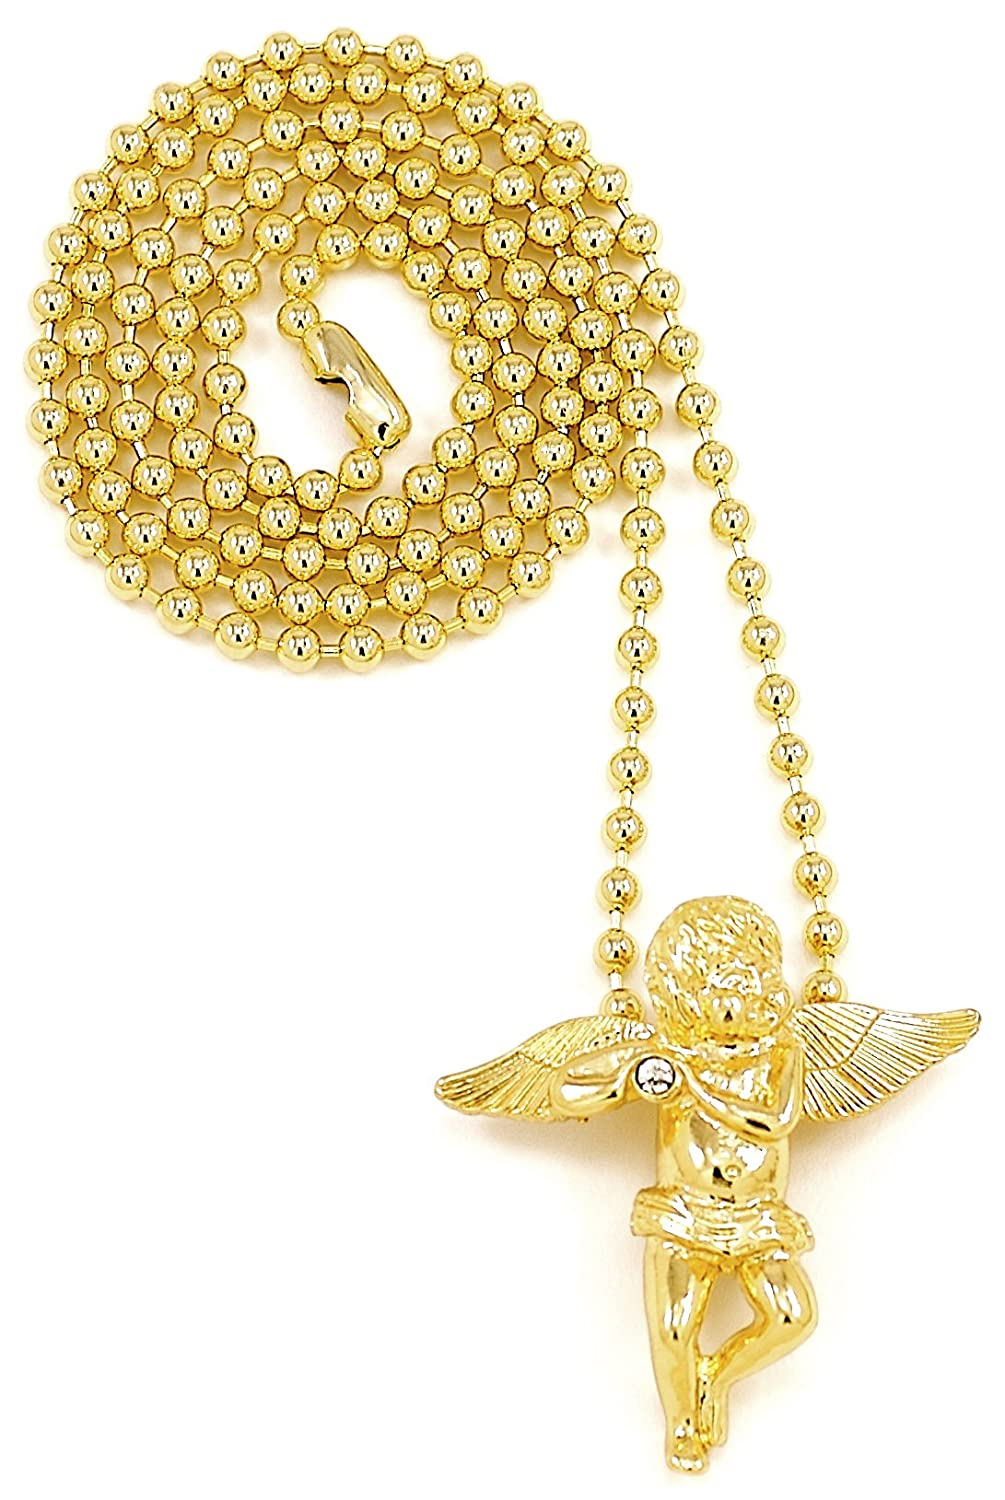 Amazon angel necklaces new small size gold color with 27 inch amazon angel necklaces new small size gold color with 27 inch ball style chain jewelry aloadofball Gallery